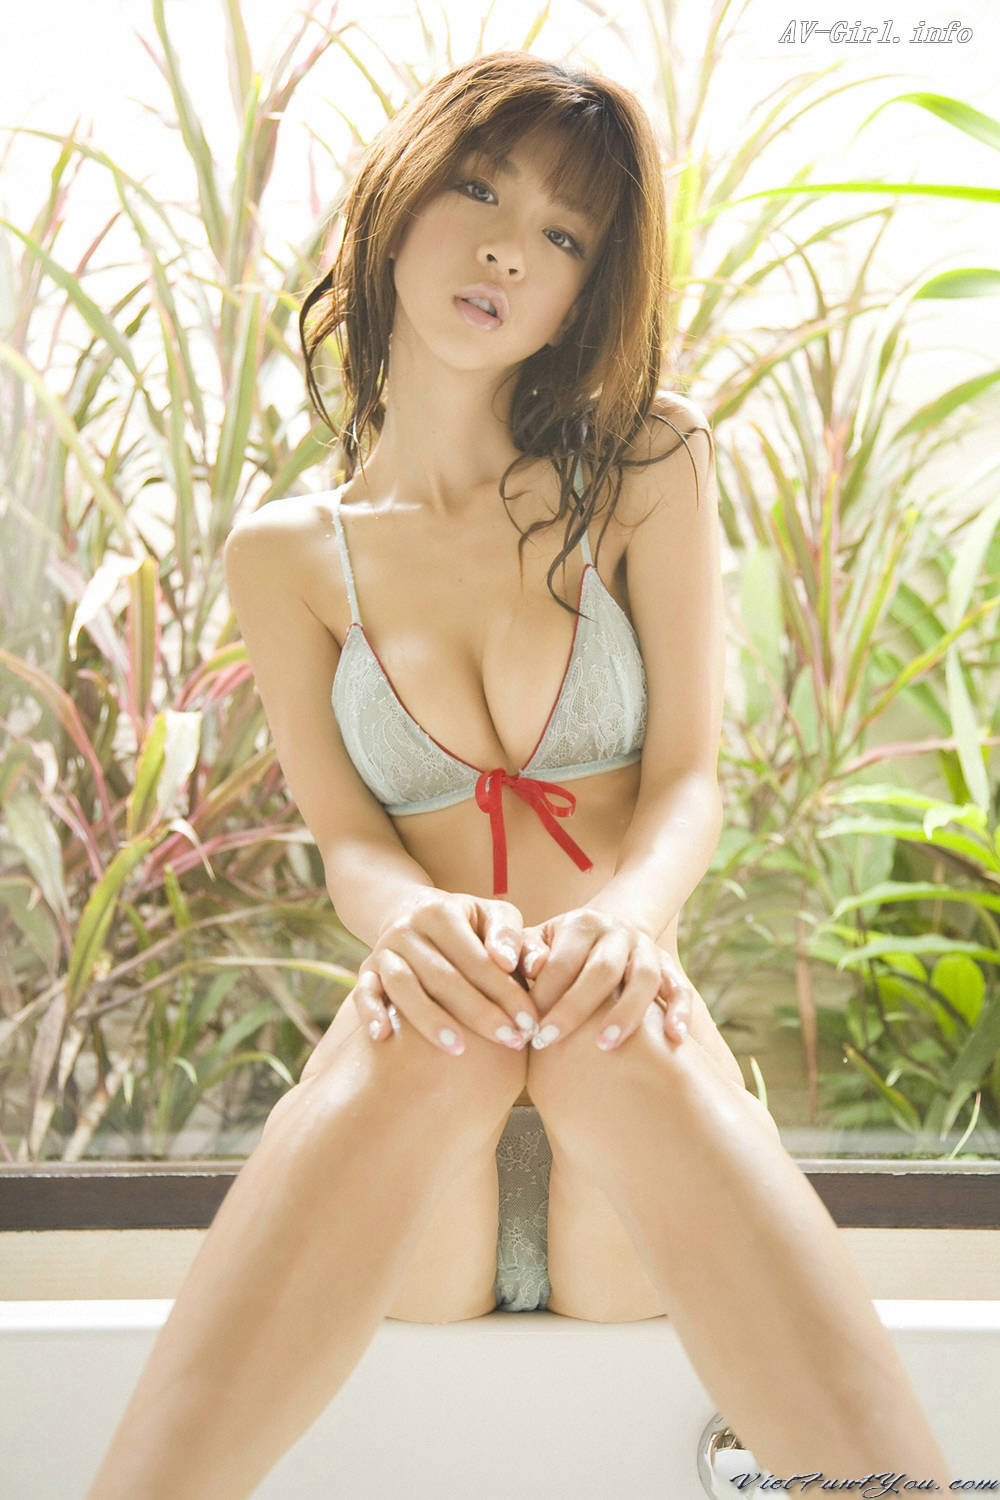 Sexy asian girls photos eBay